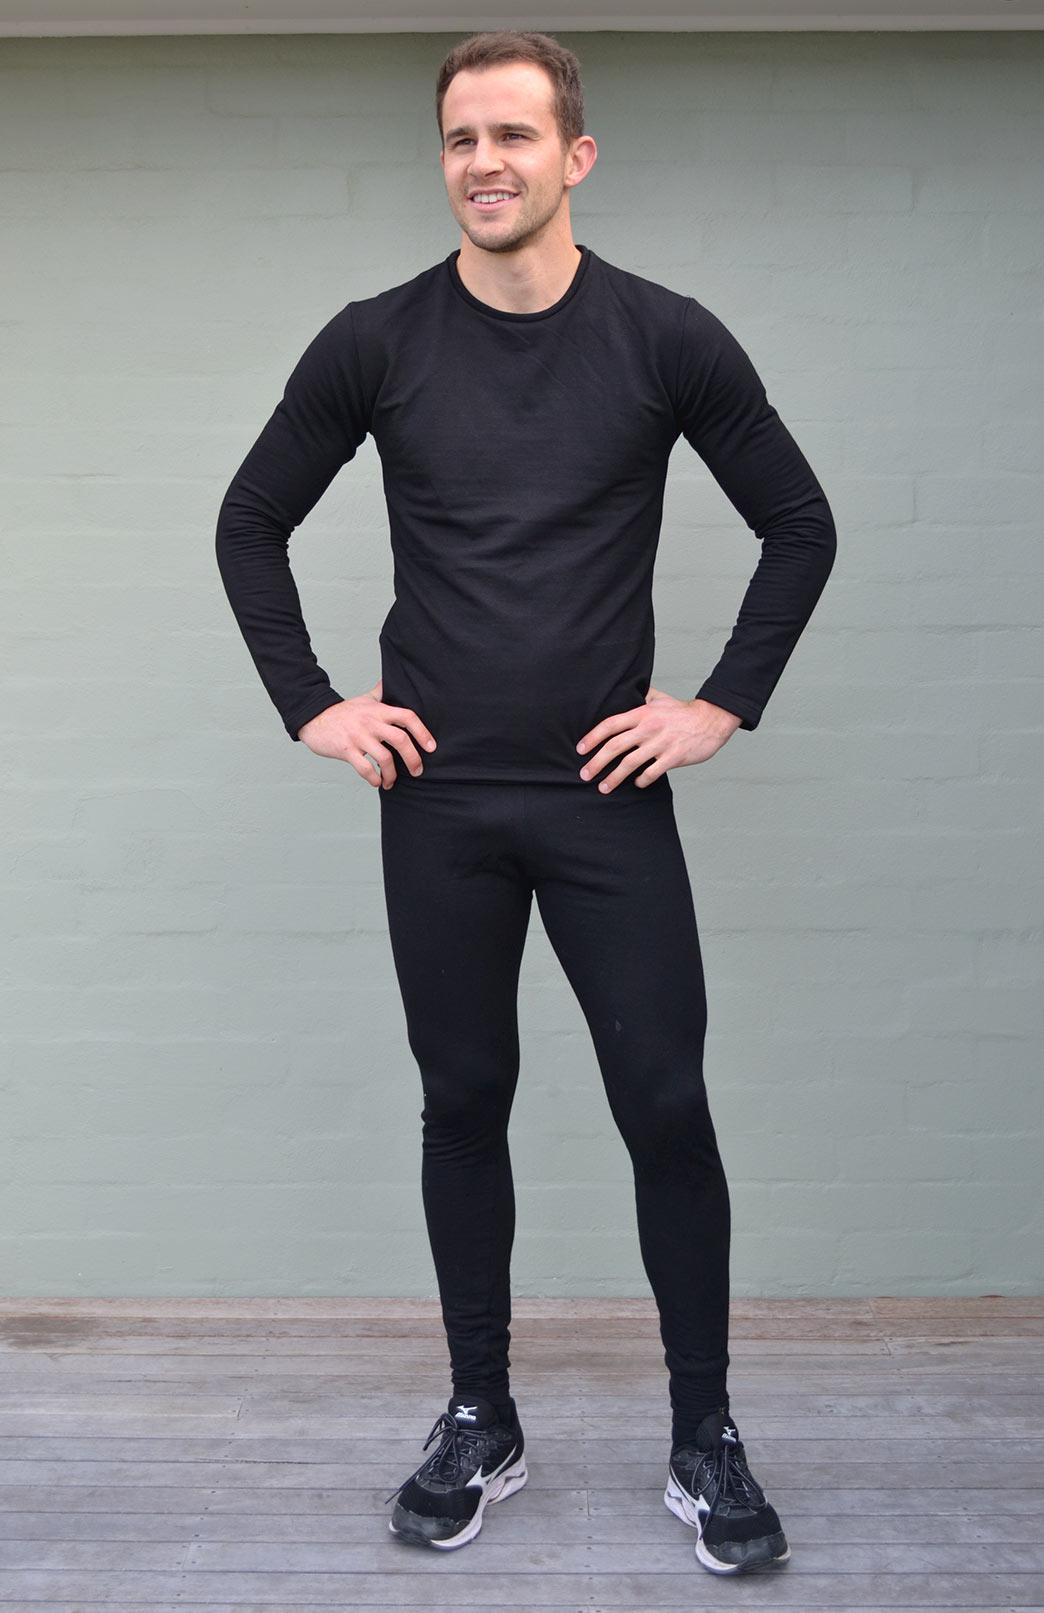 Fleece Leggings - Men's Plain Black Merino Modal Blend Thermal Fleece Leggings - Smitten Merino Tasmania Australia